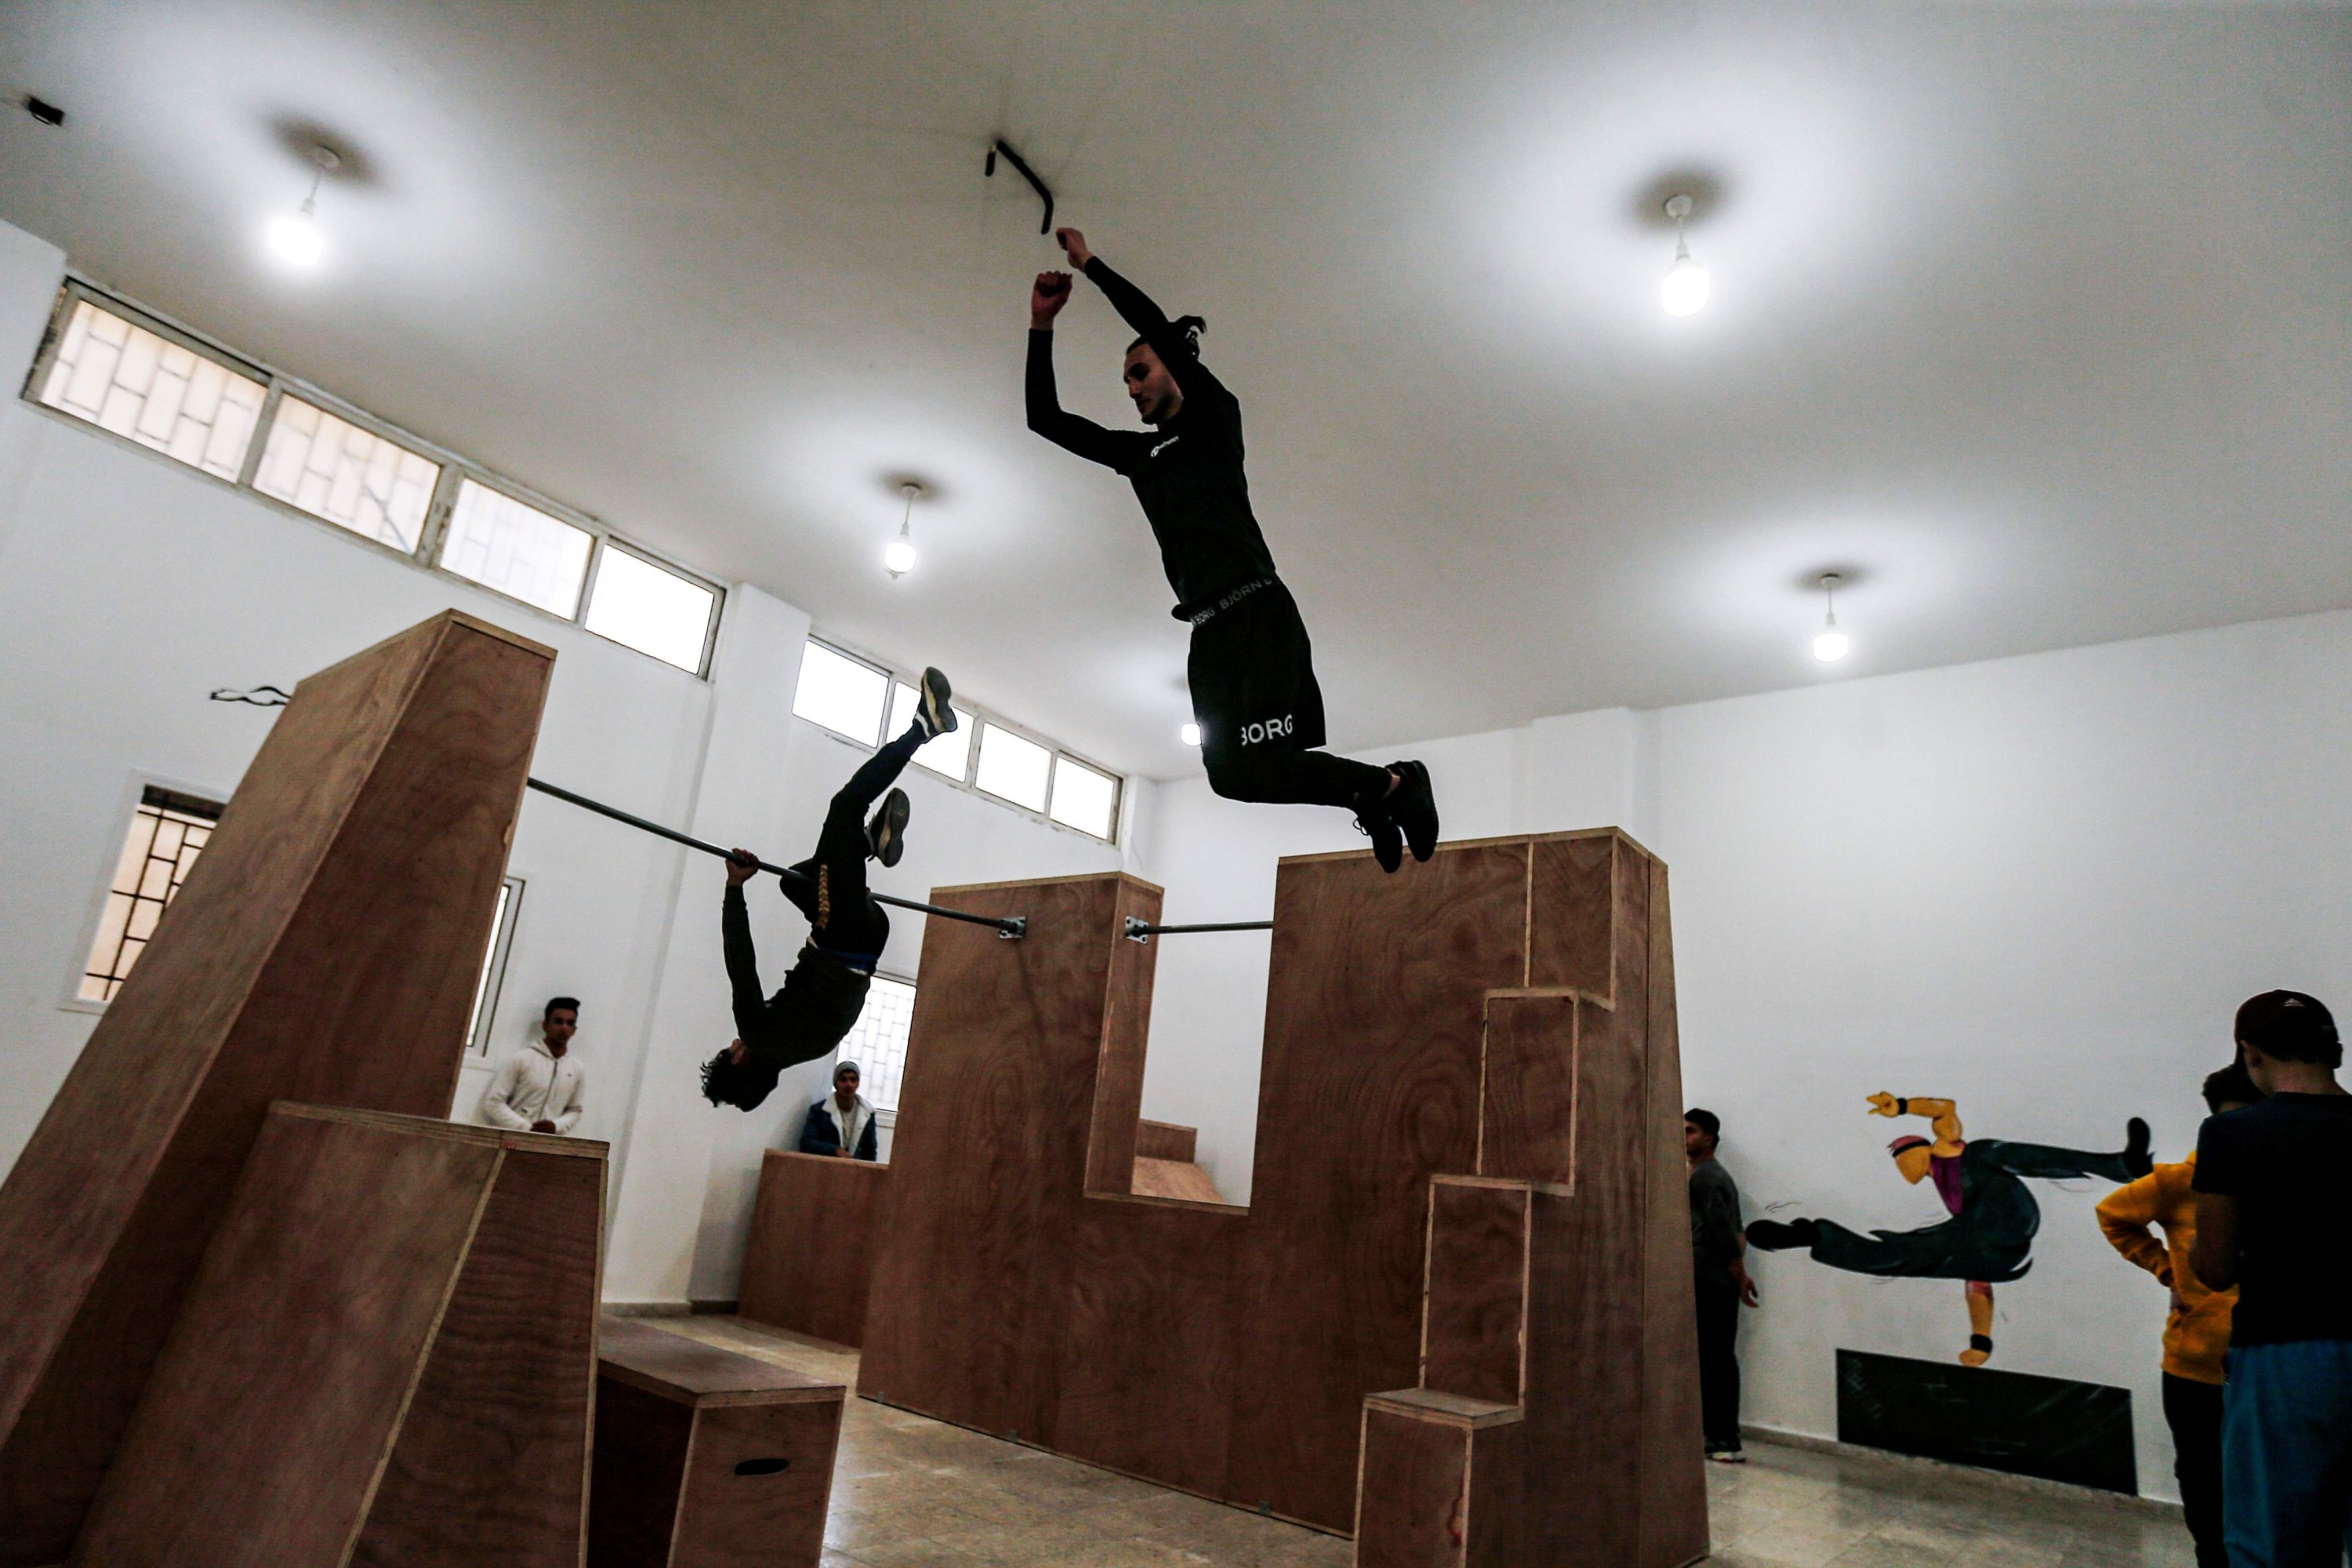 Palestinian youth train at the Wallrunners Parkour Academy's training facility in Gaza City, Dec. 28, 2020. (AFP Photo)